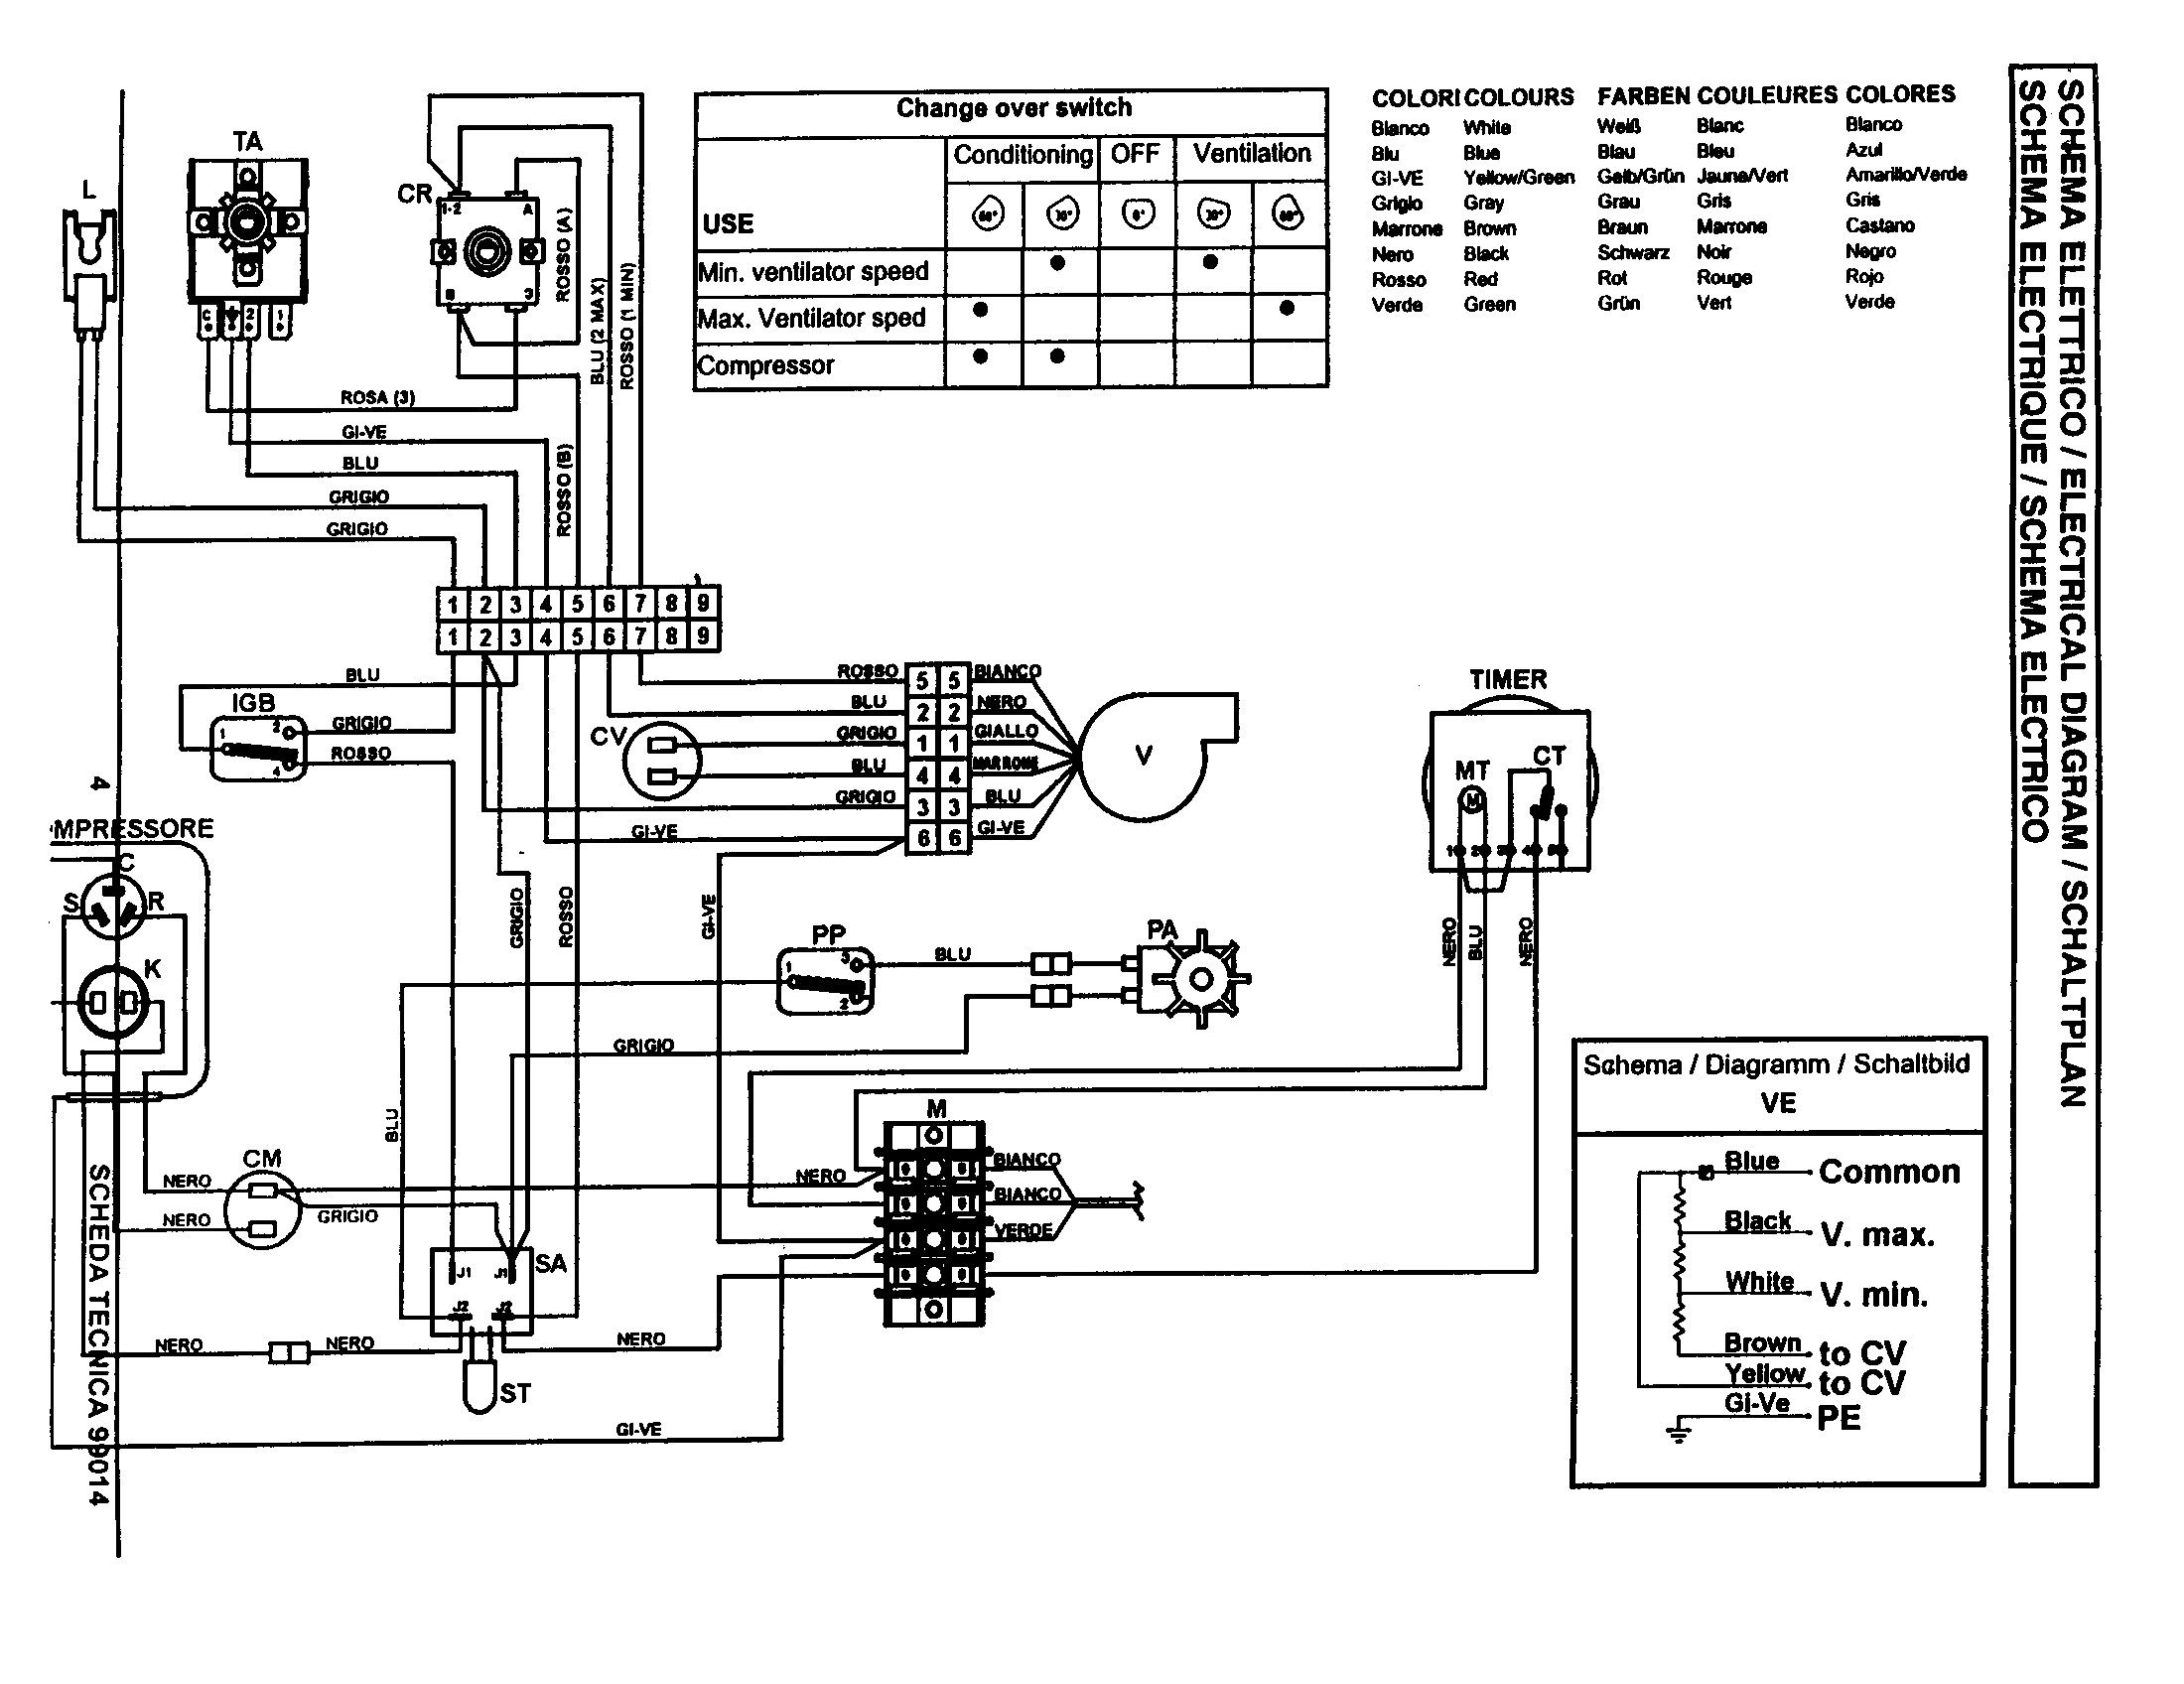 New Wiring Diagram for Air Conditioning Unit Diagram